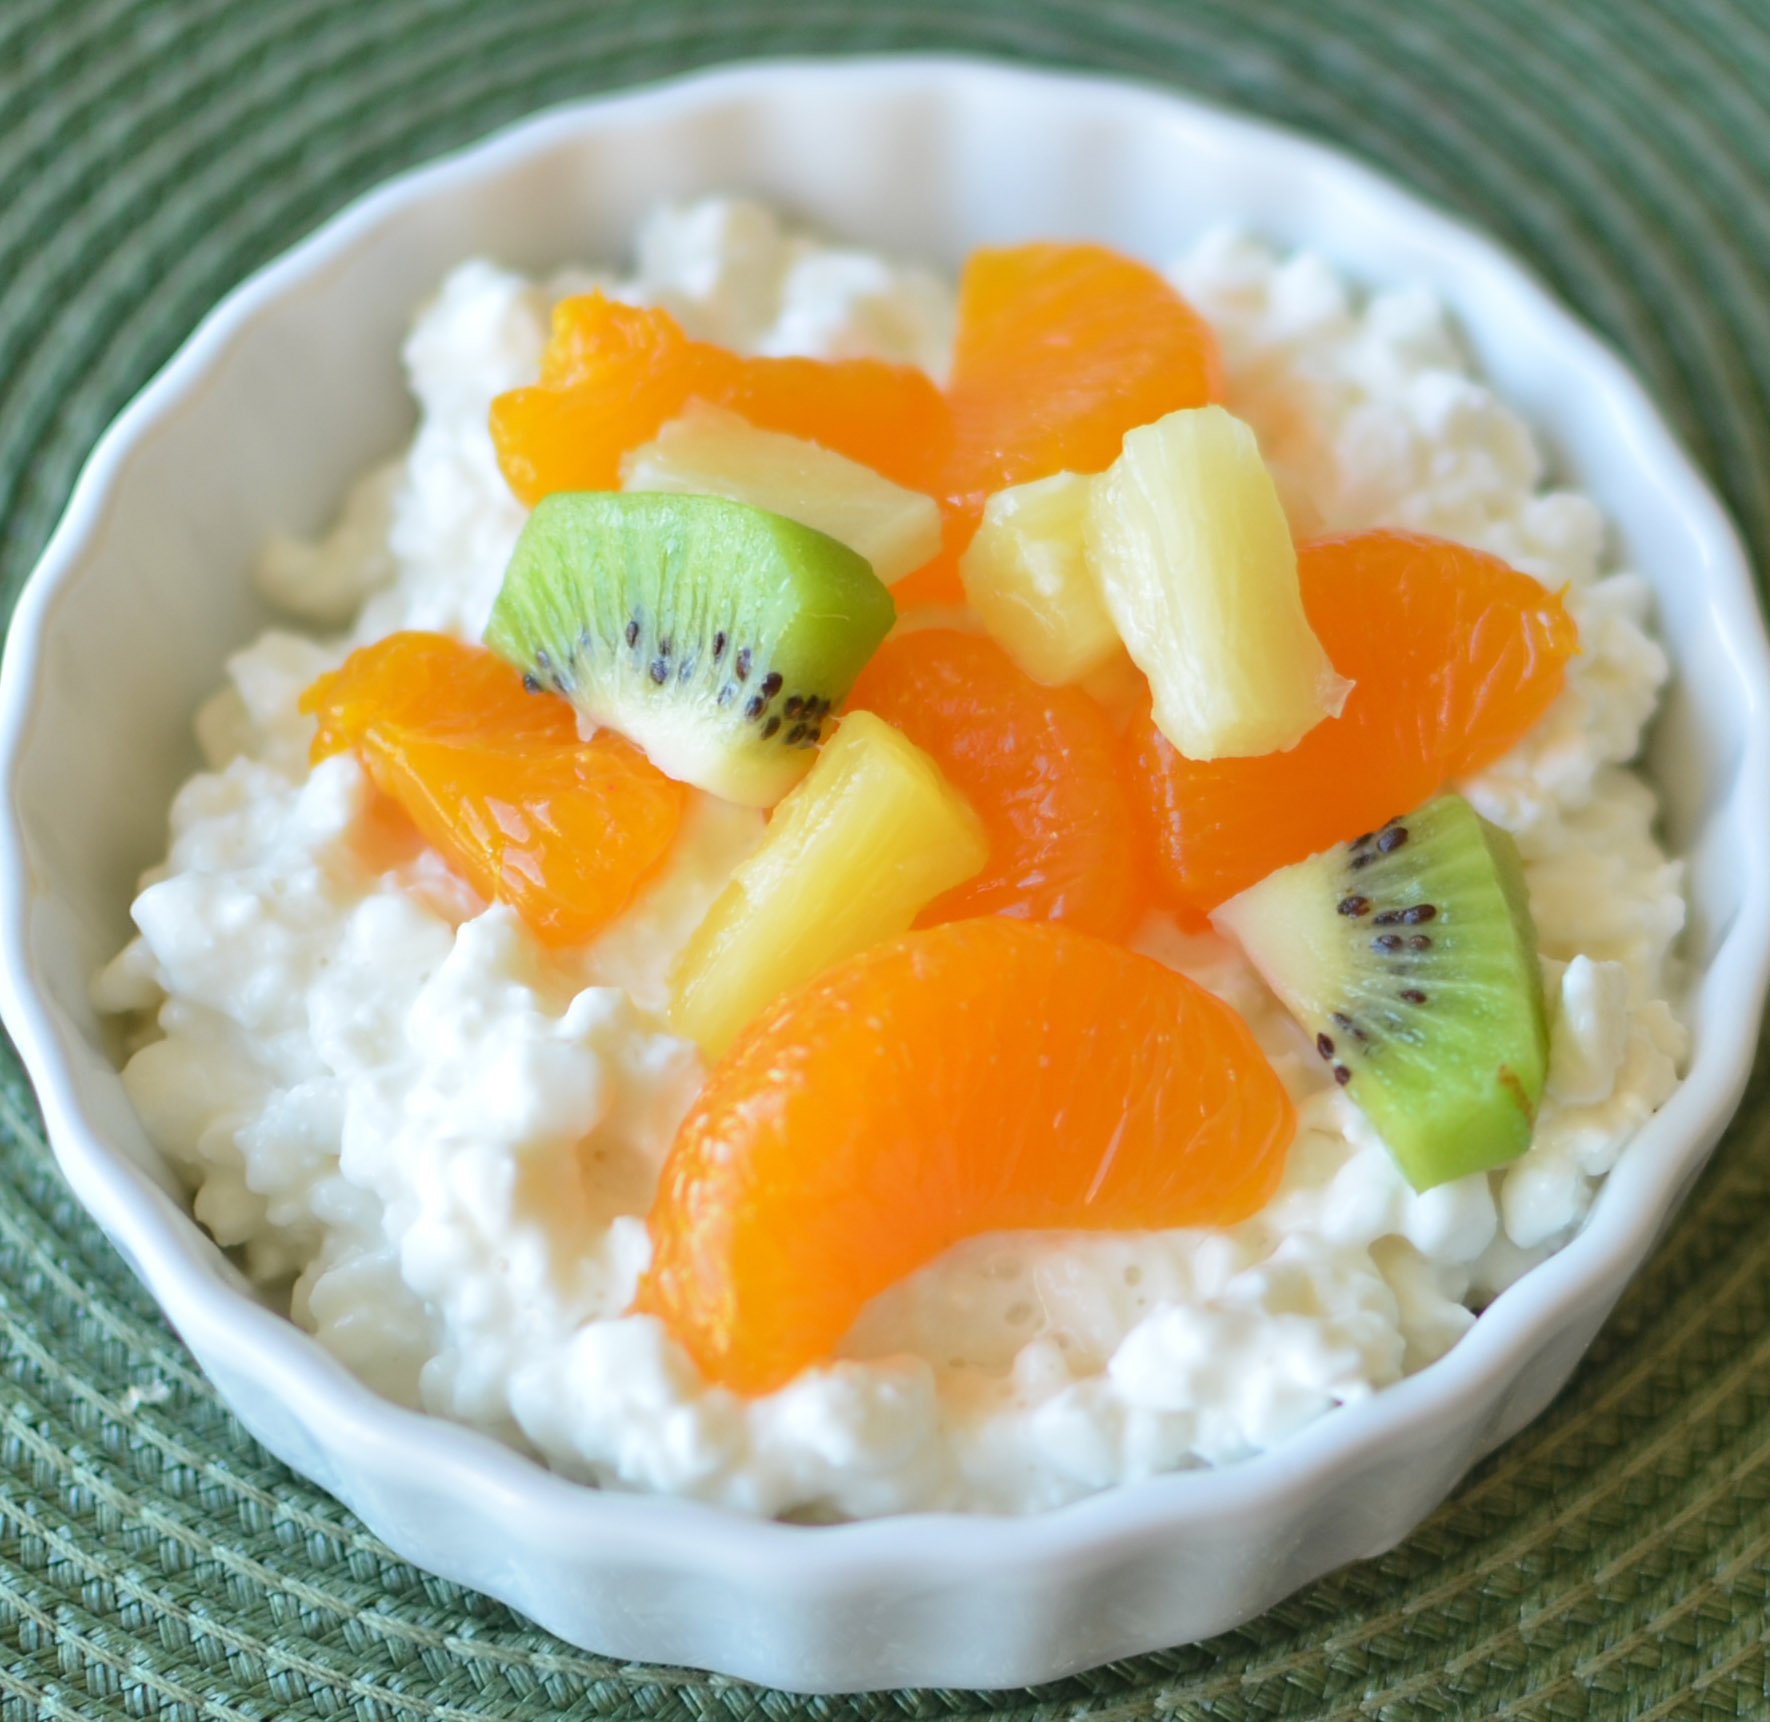 Marvelous Cottage Cheese And Fruit